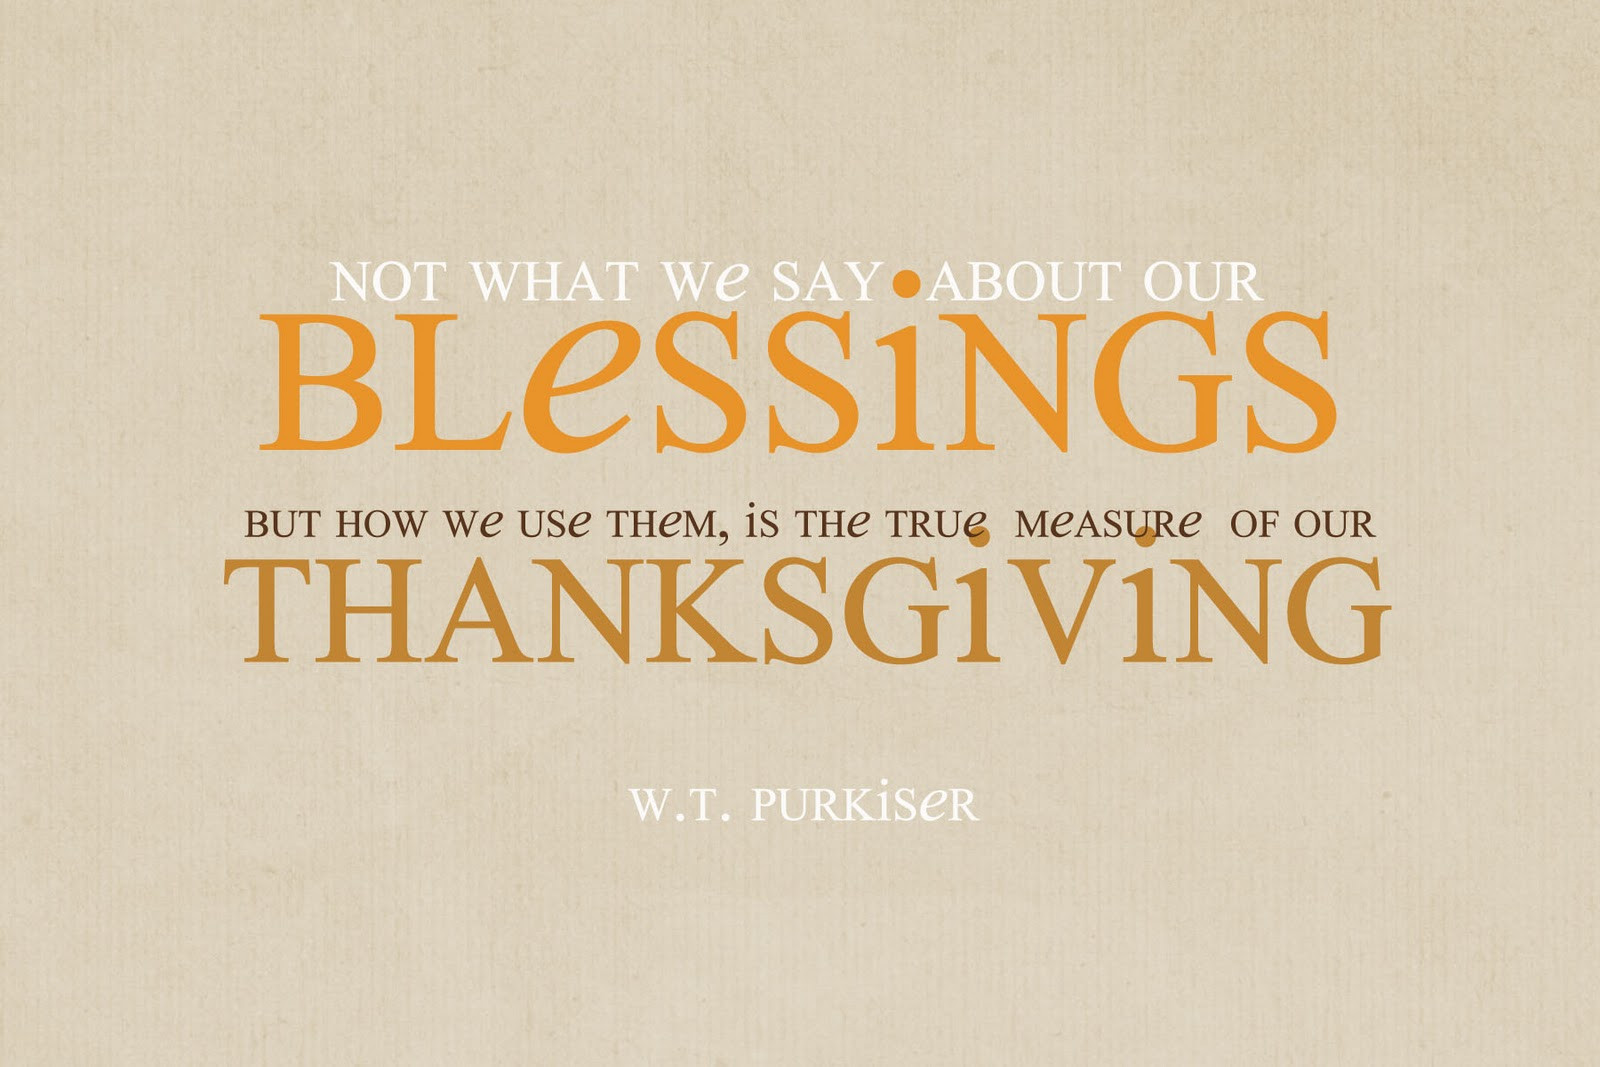 Thanksgiving Quotes  3000 miles north & back 11 01 2011 12 01 2011